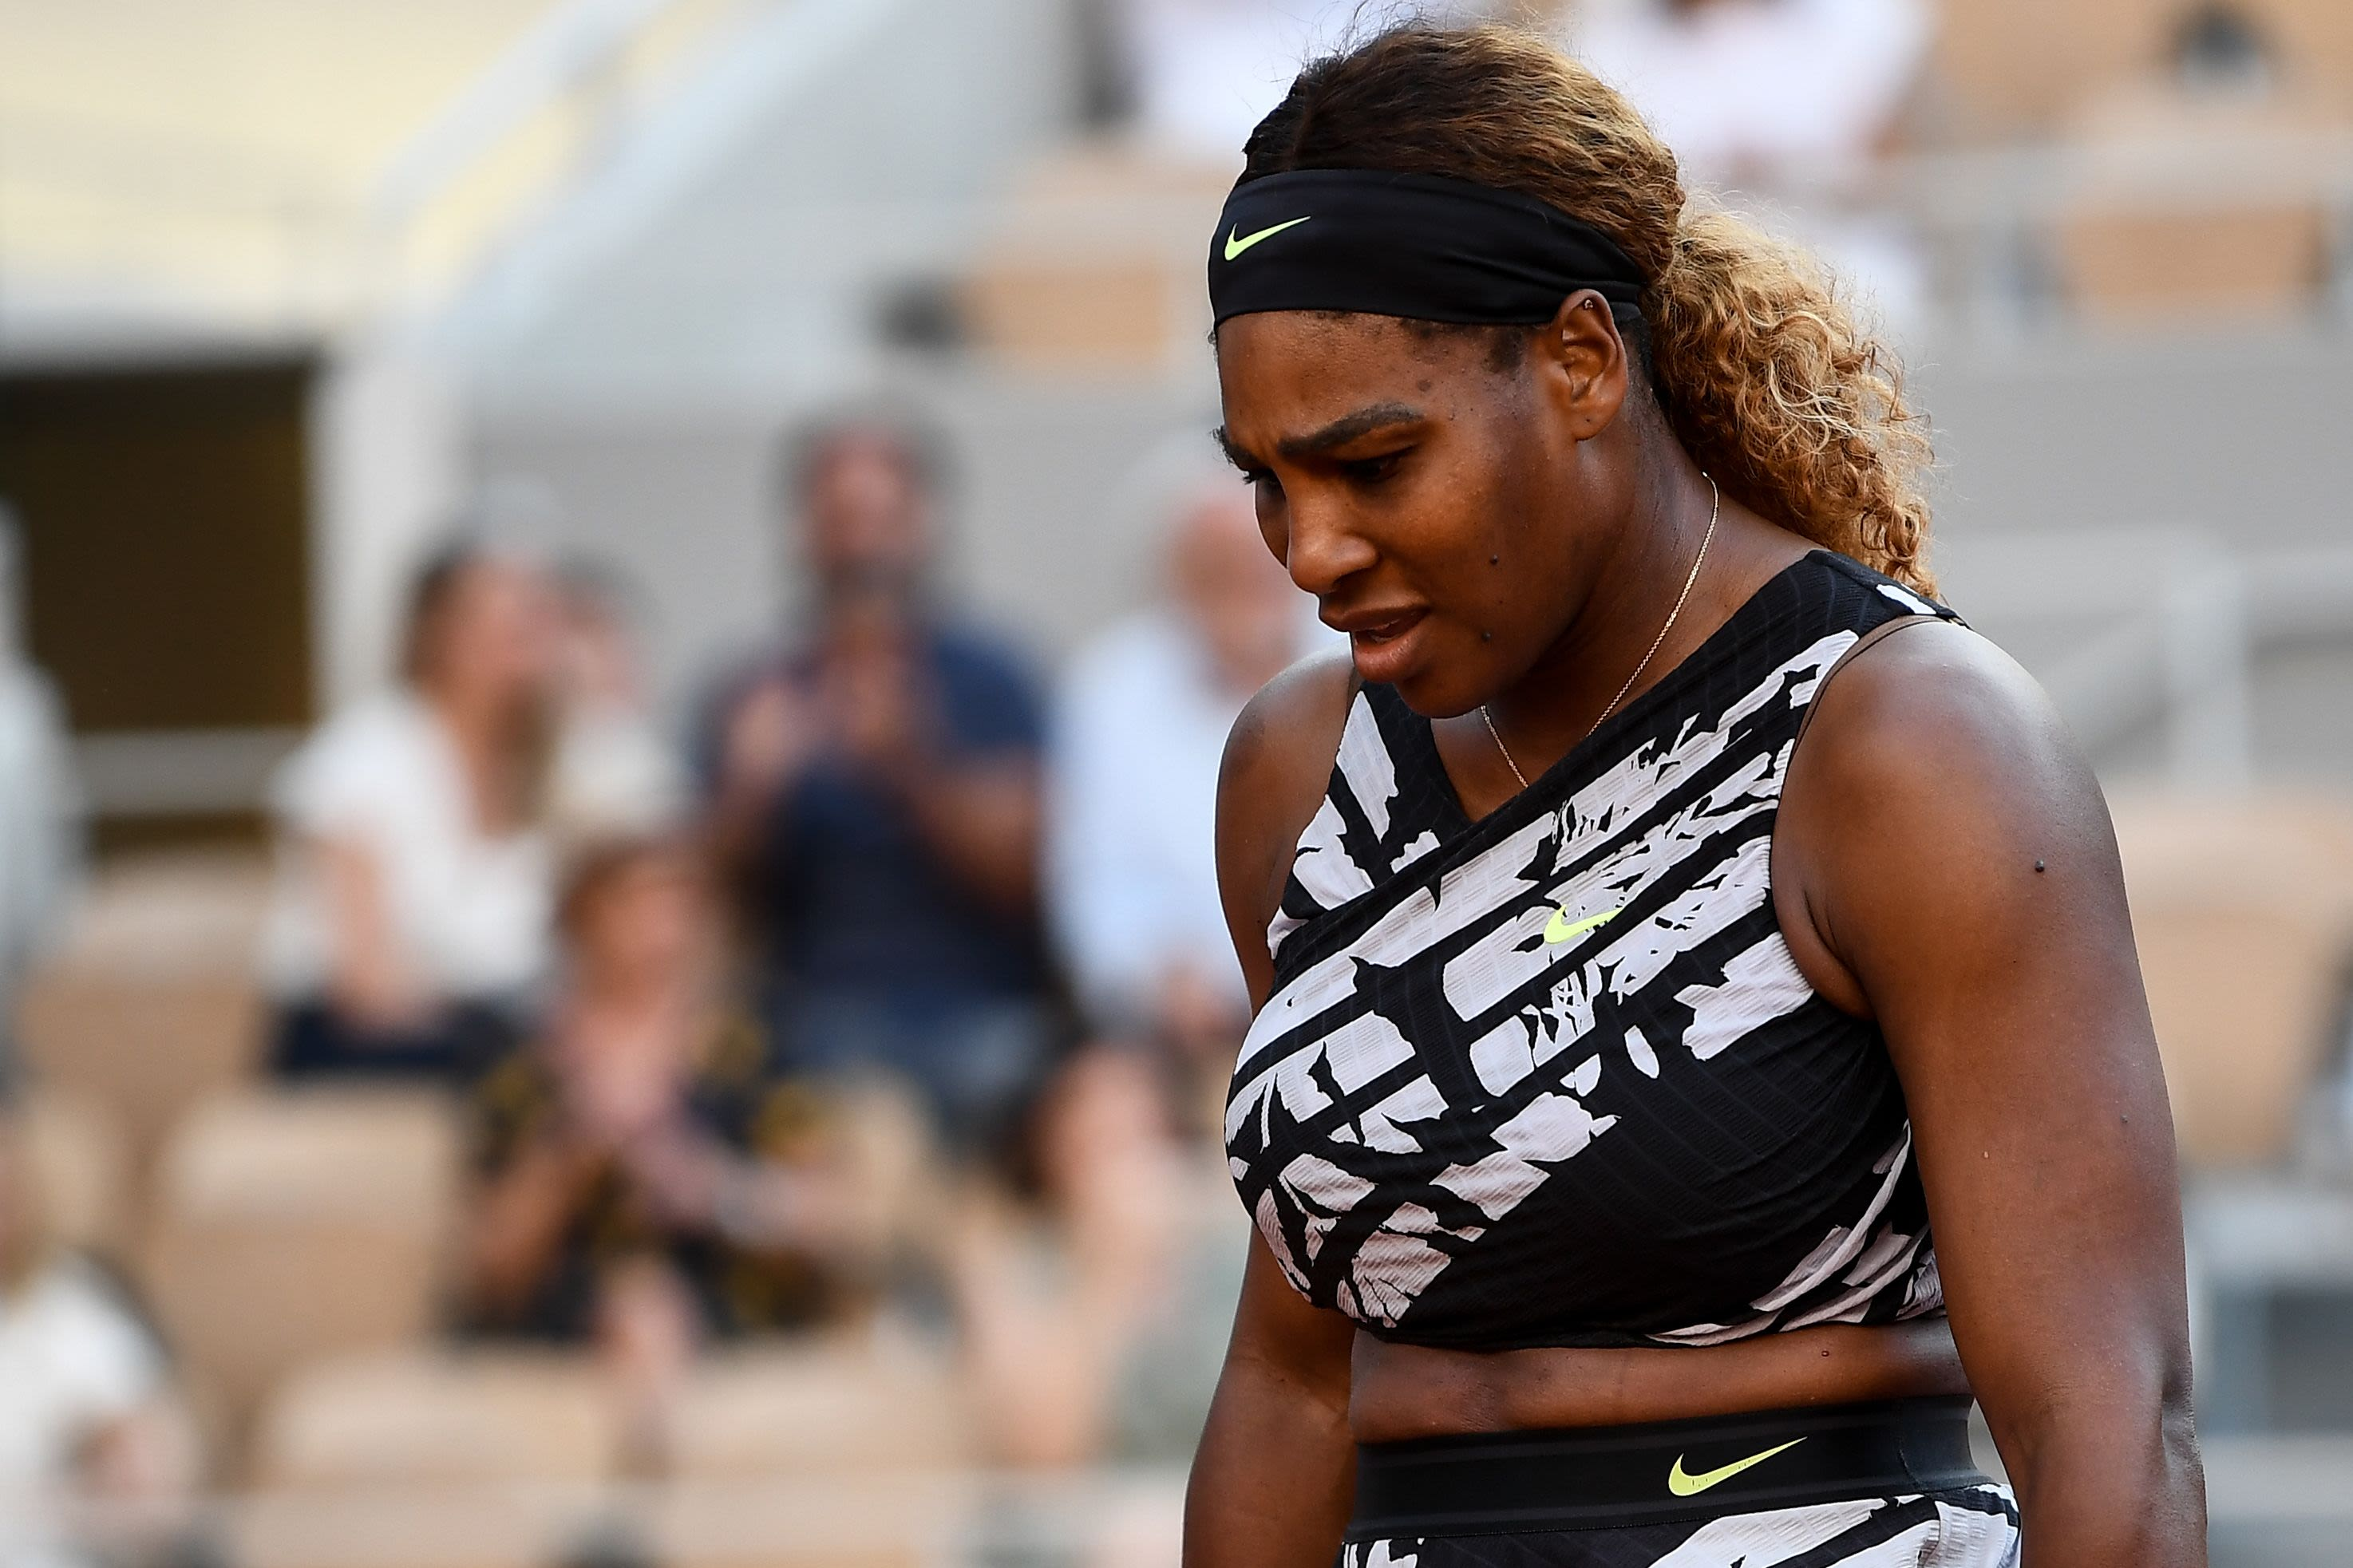 Serena Williams eliminated from French Open, loses quest for 24th Grand Slam title